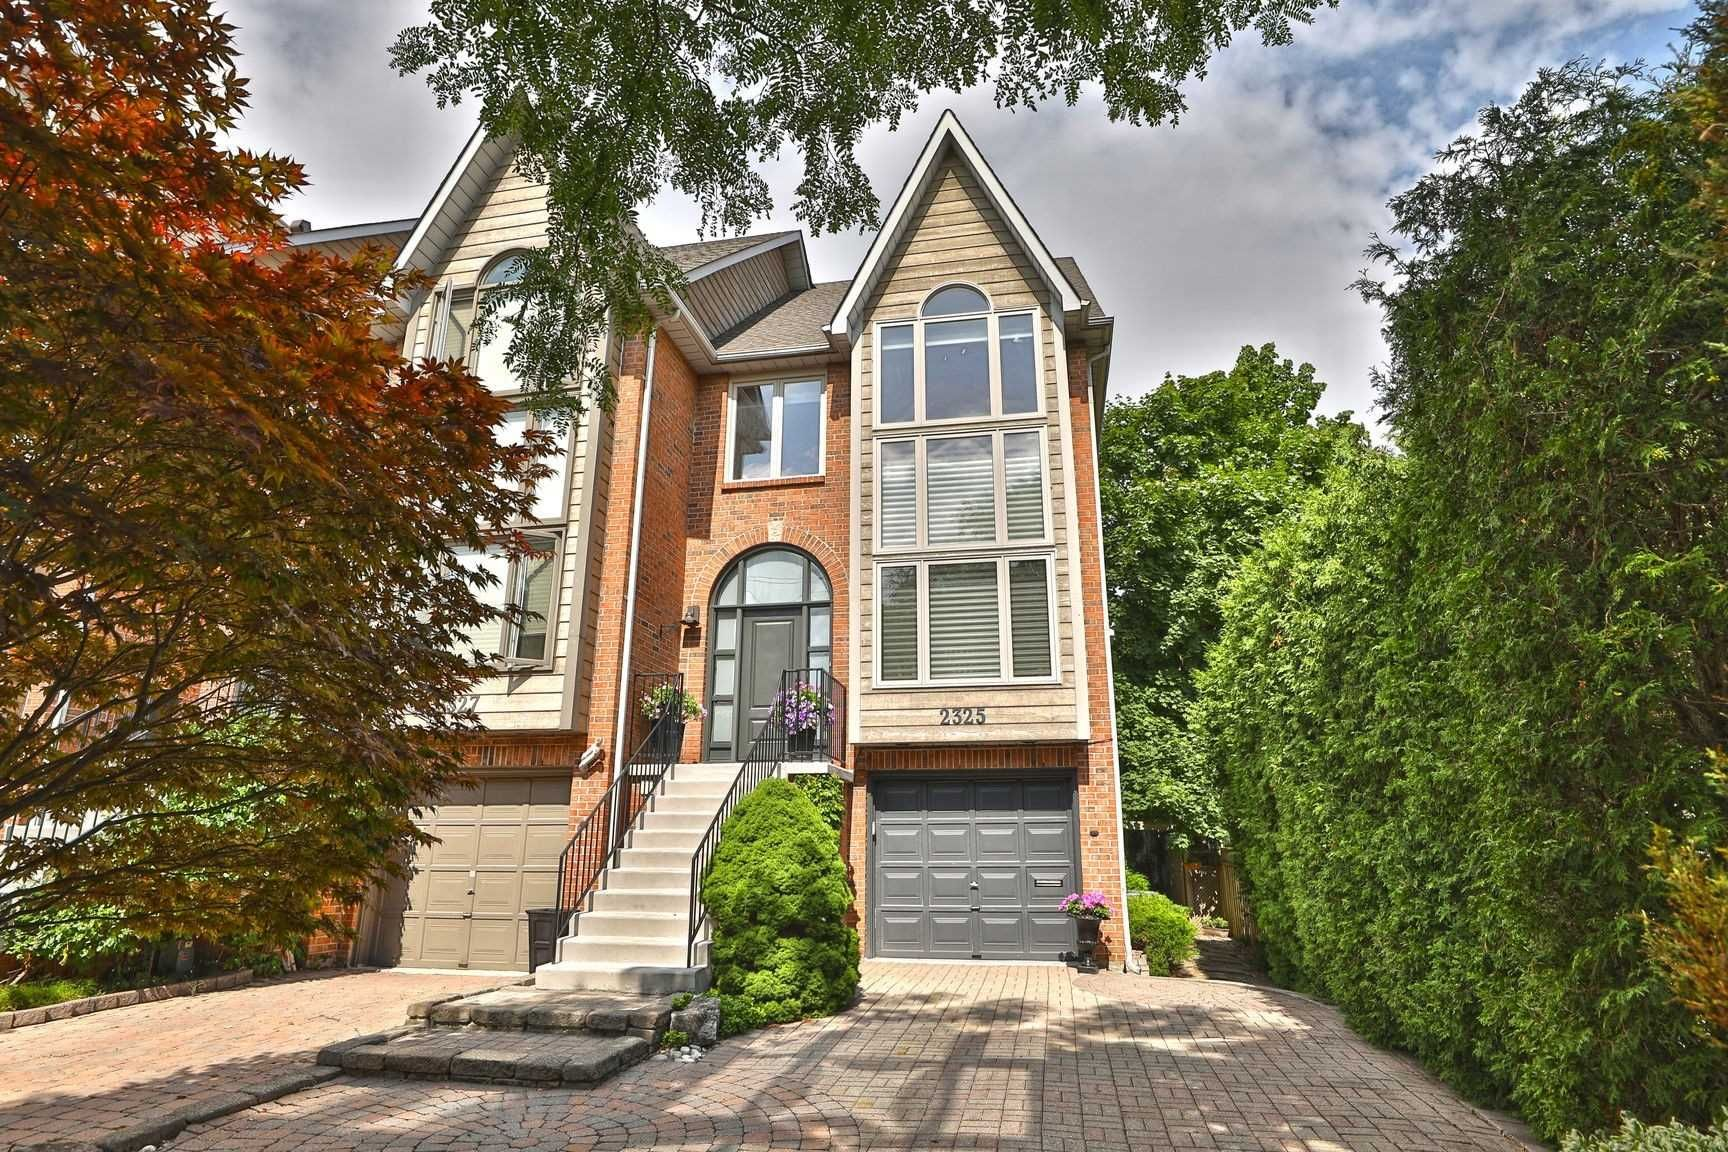 Main Photo: 2325 Marine Drive in Oakville: Bronte West House (3-Storey) for sale : MLS®# W4877027